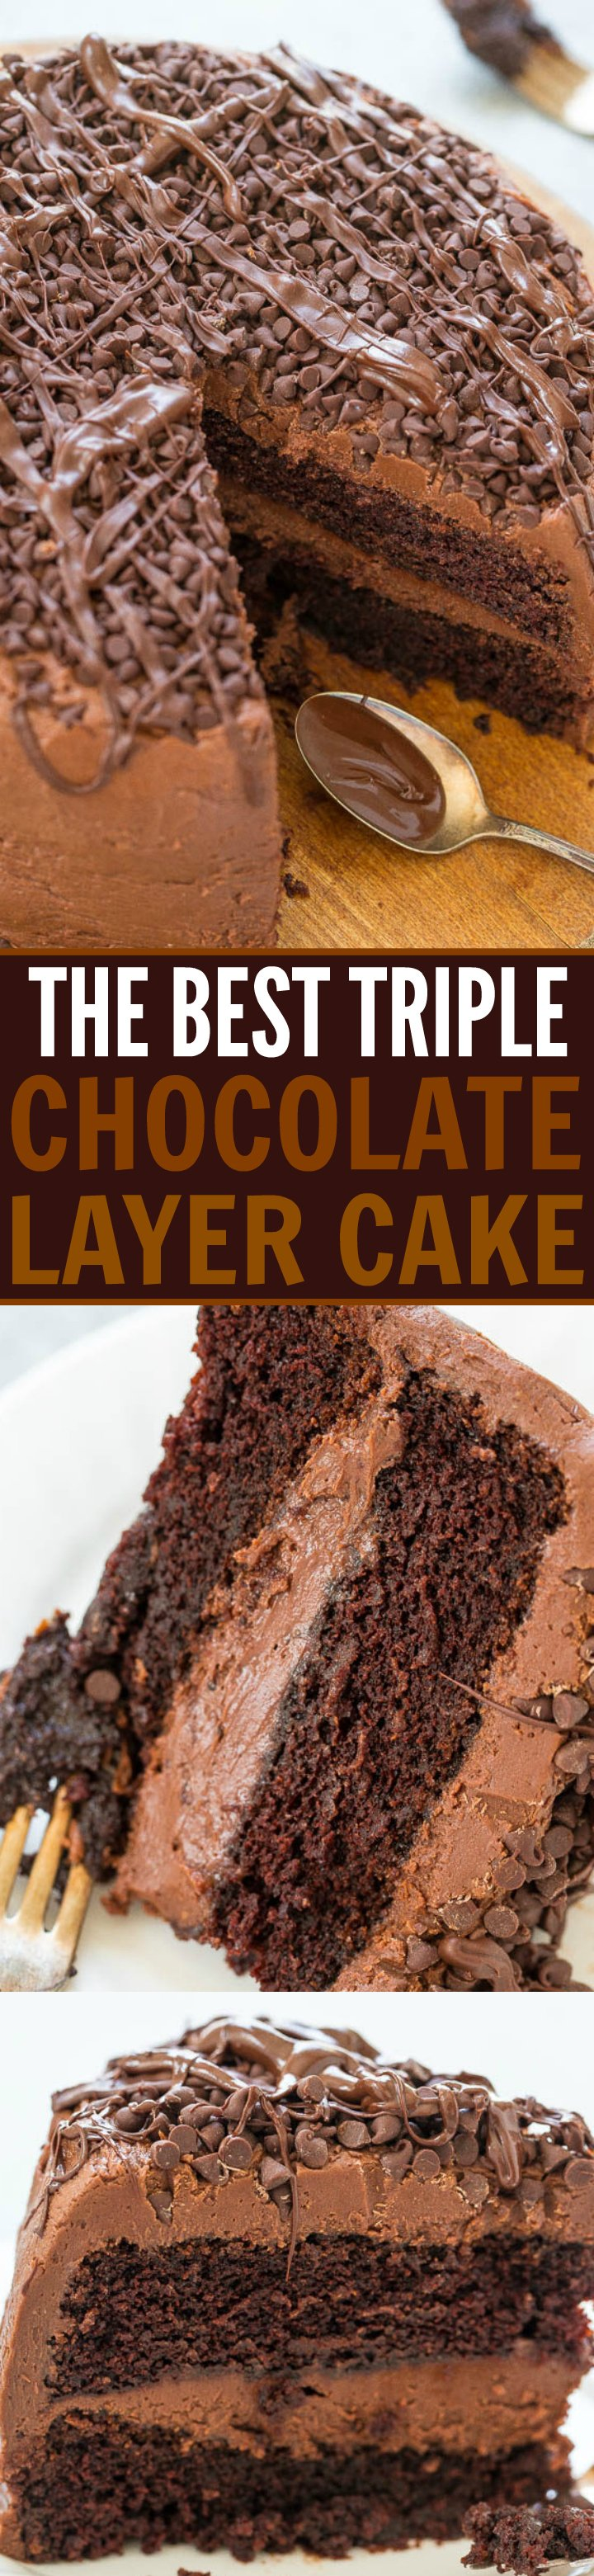 The Best Triple Chocolate Layer Cake - Rich, intense, and everything you crave in DECADENT chocolate cake!! Along with tender chocolate cake there's chocolate cream cheese frosting, chocolate chips, and melted chocolate!!